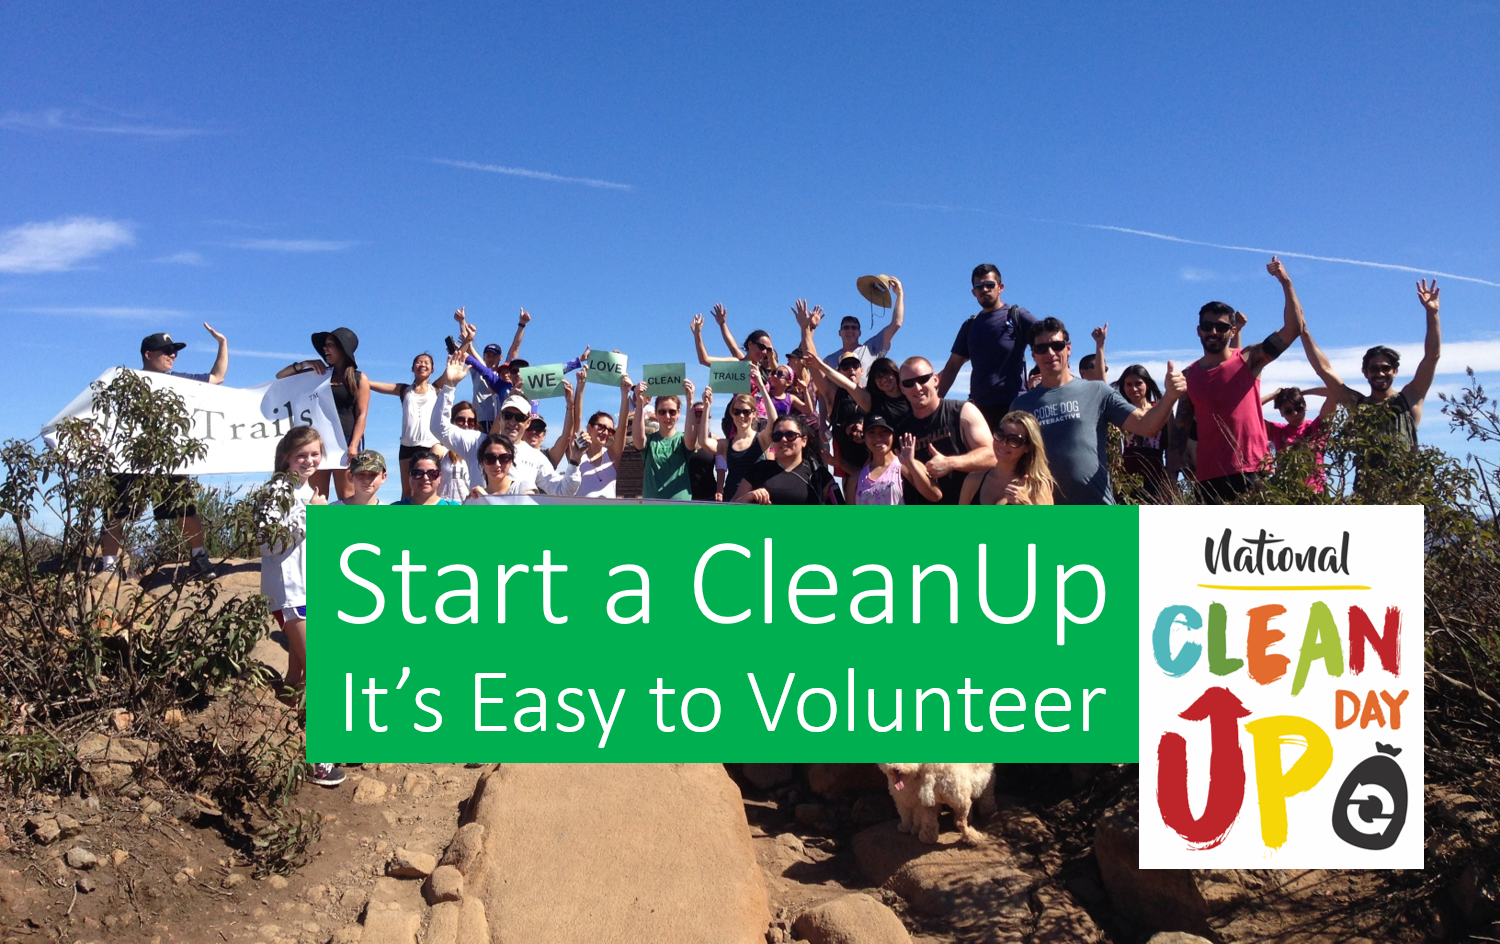 Start a CleanUp - Already have a company or group?Start Here!